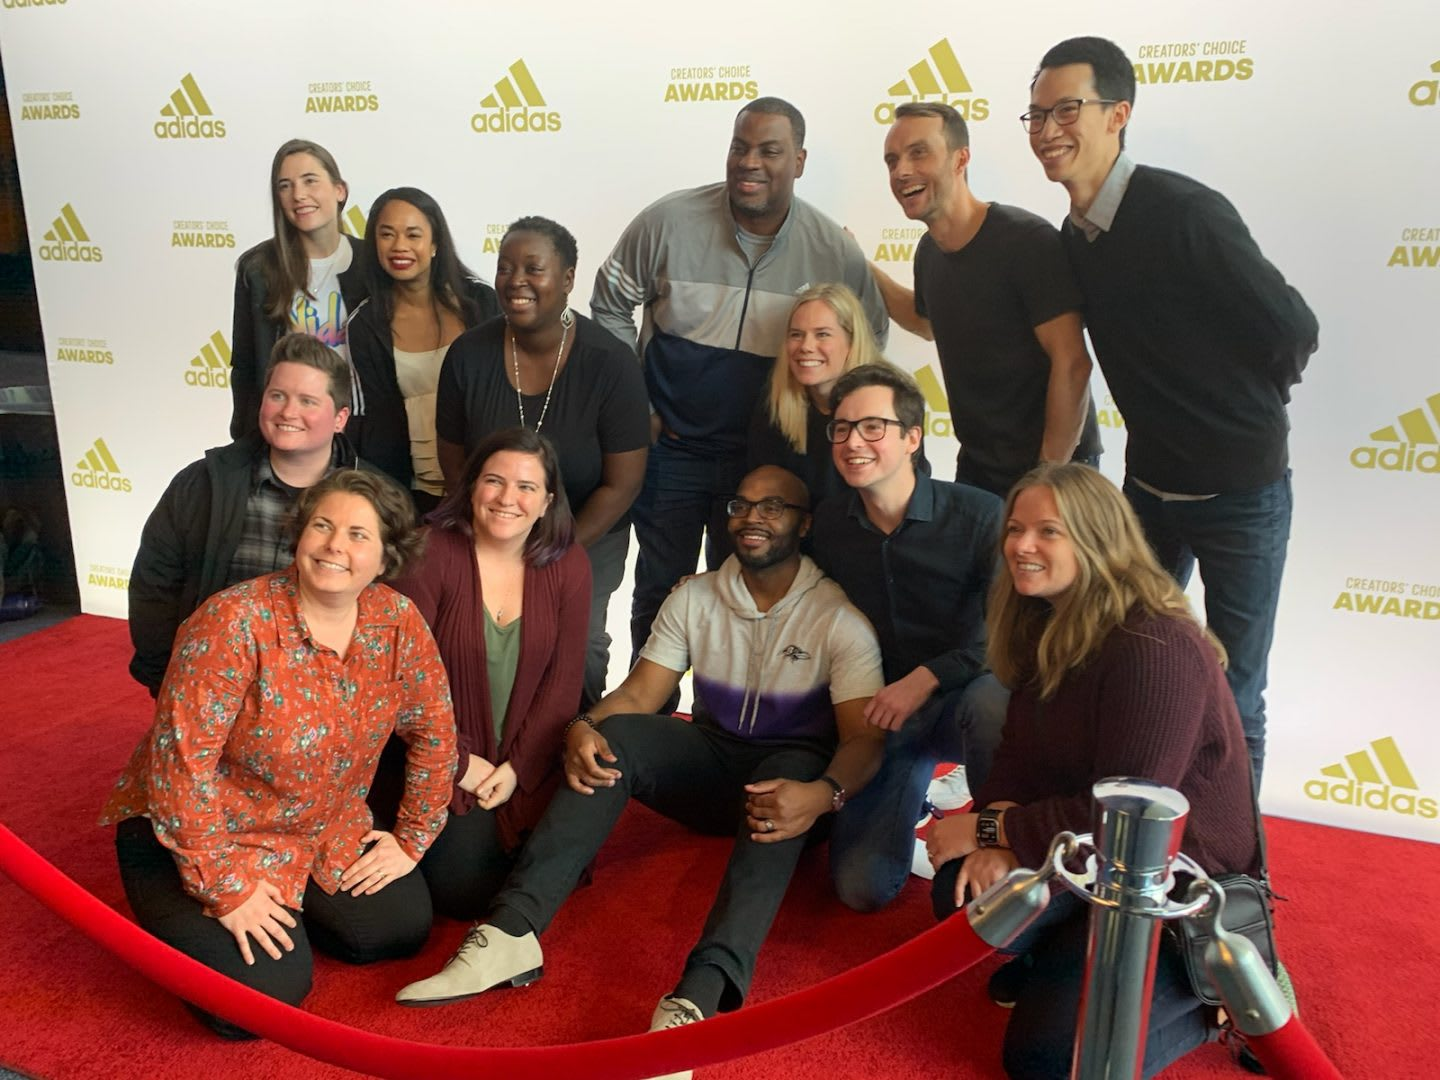 Group of adidas employees during the creators choice awards. Diversity in terms, inlcusion, GamePlanA